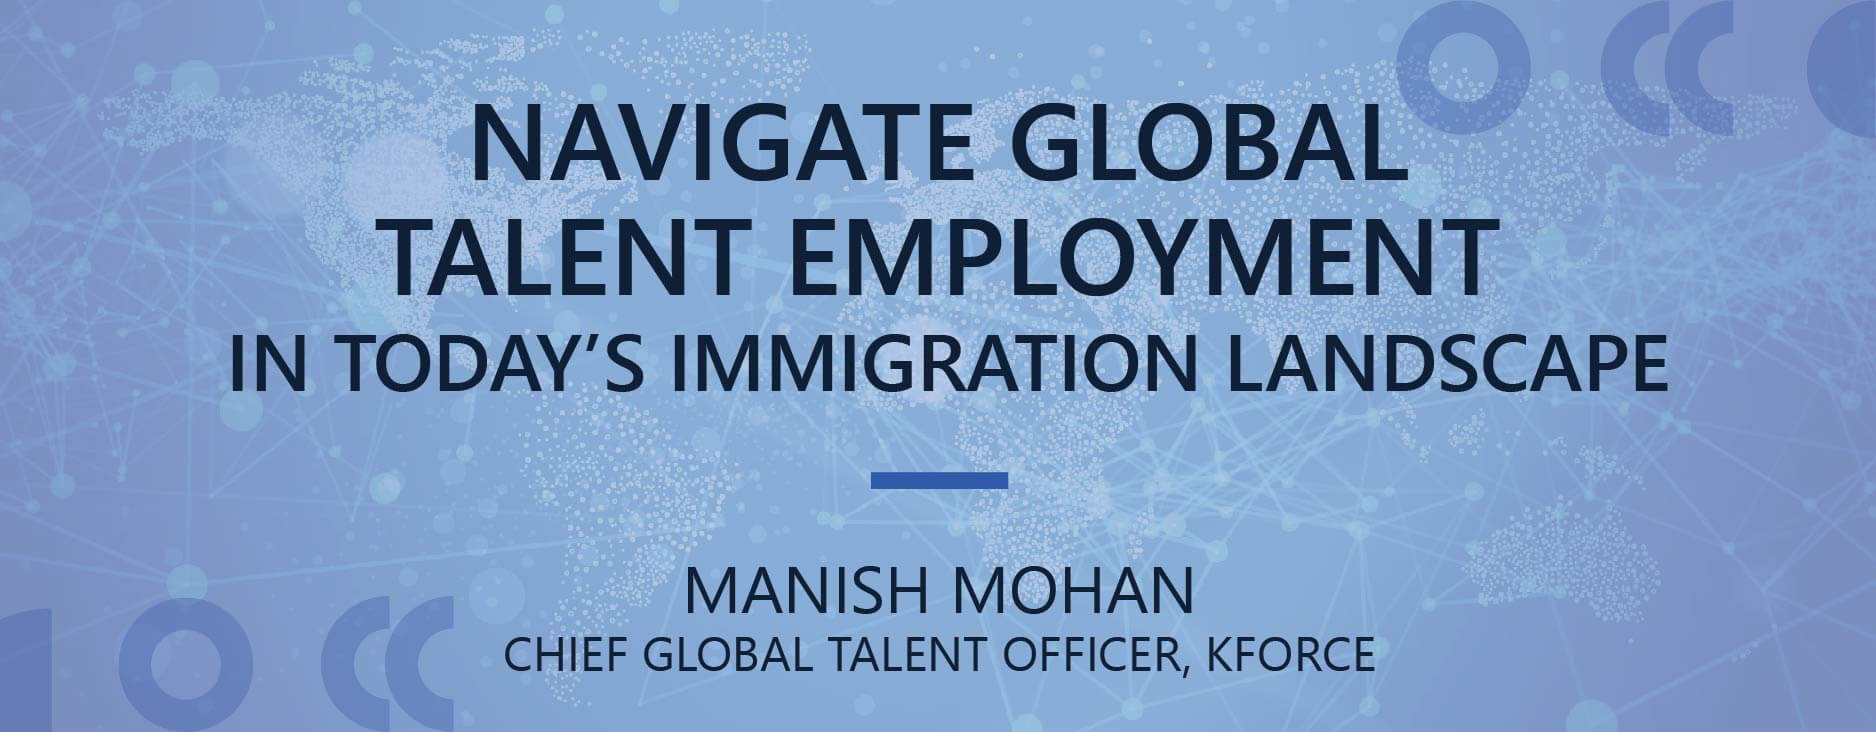 Navigate Global Talent Employment in Today's Immigration Landscape